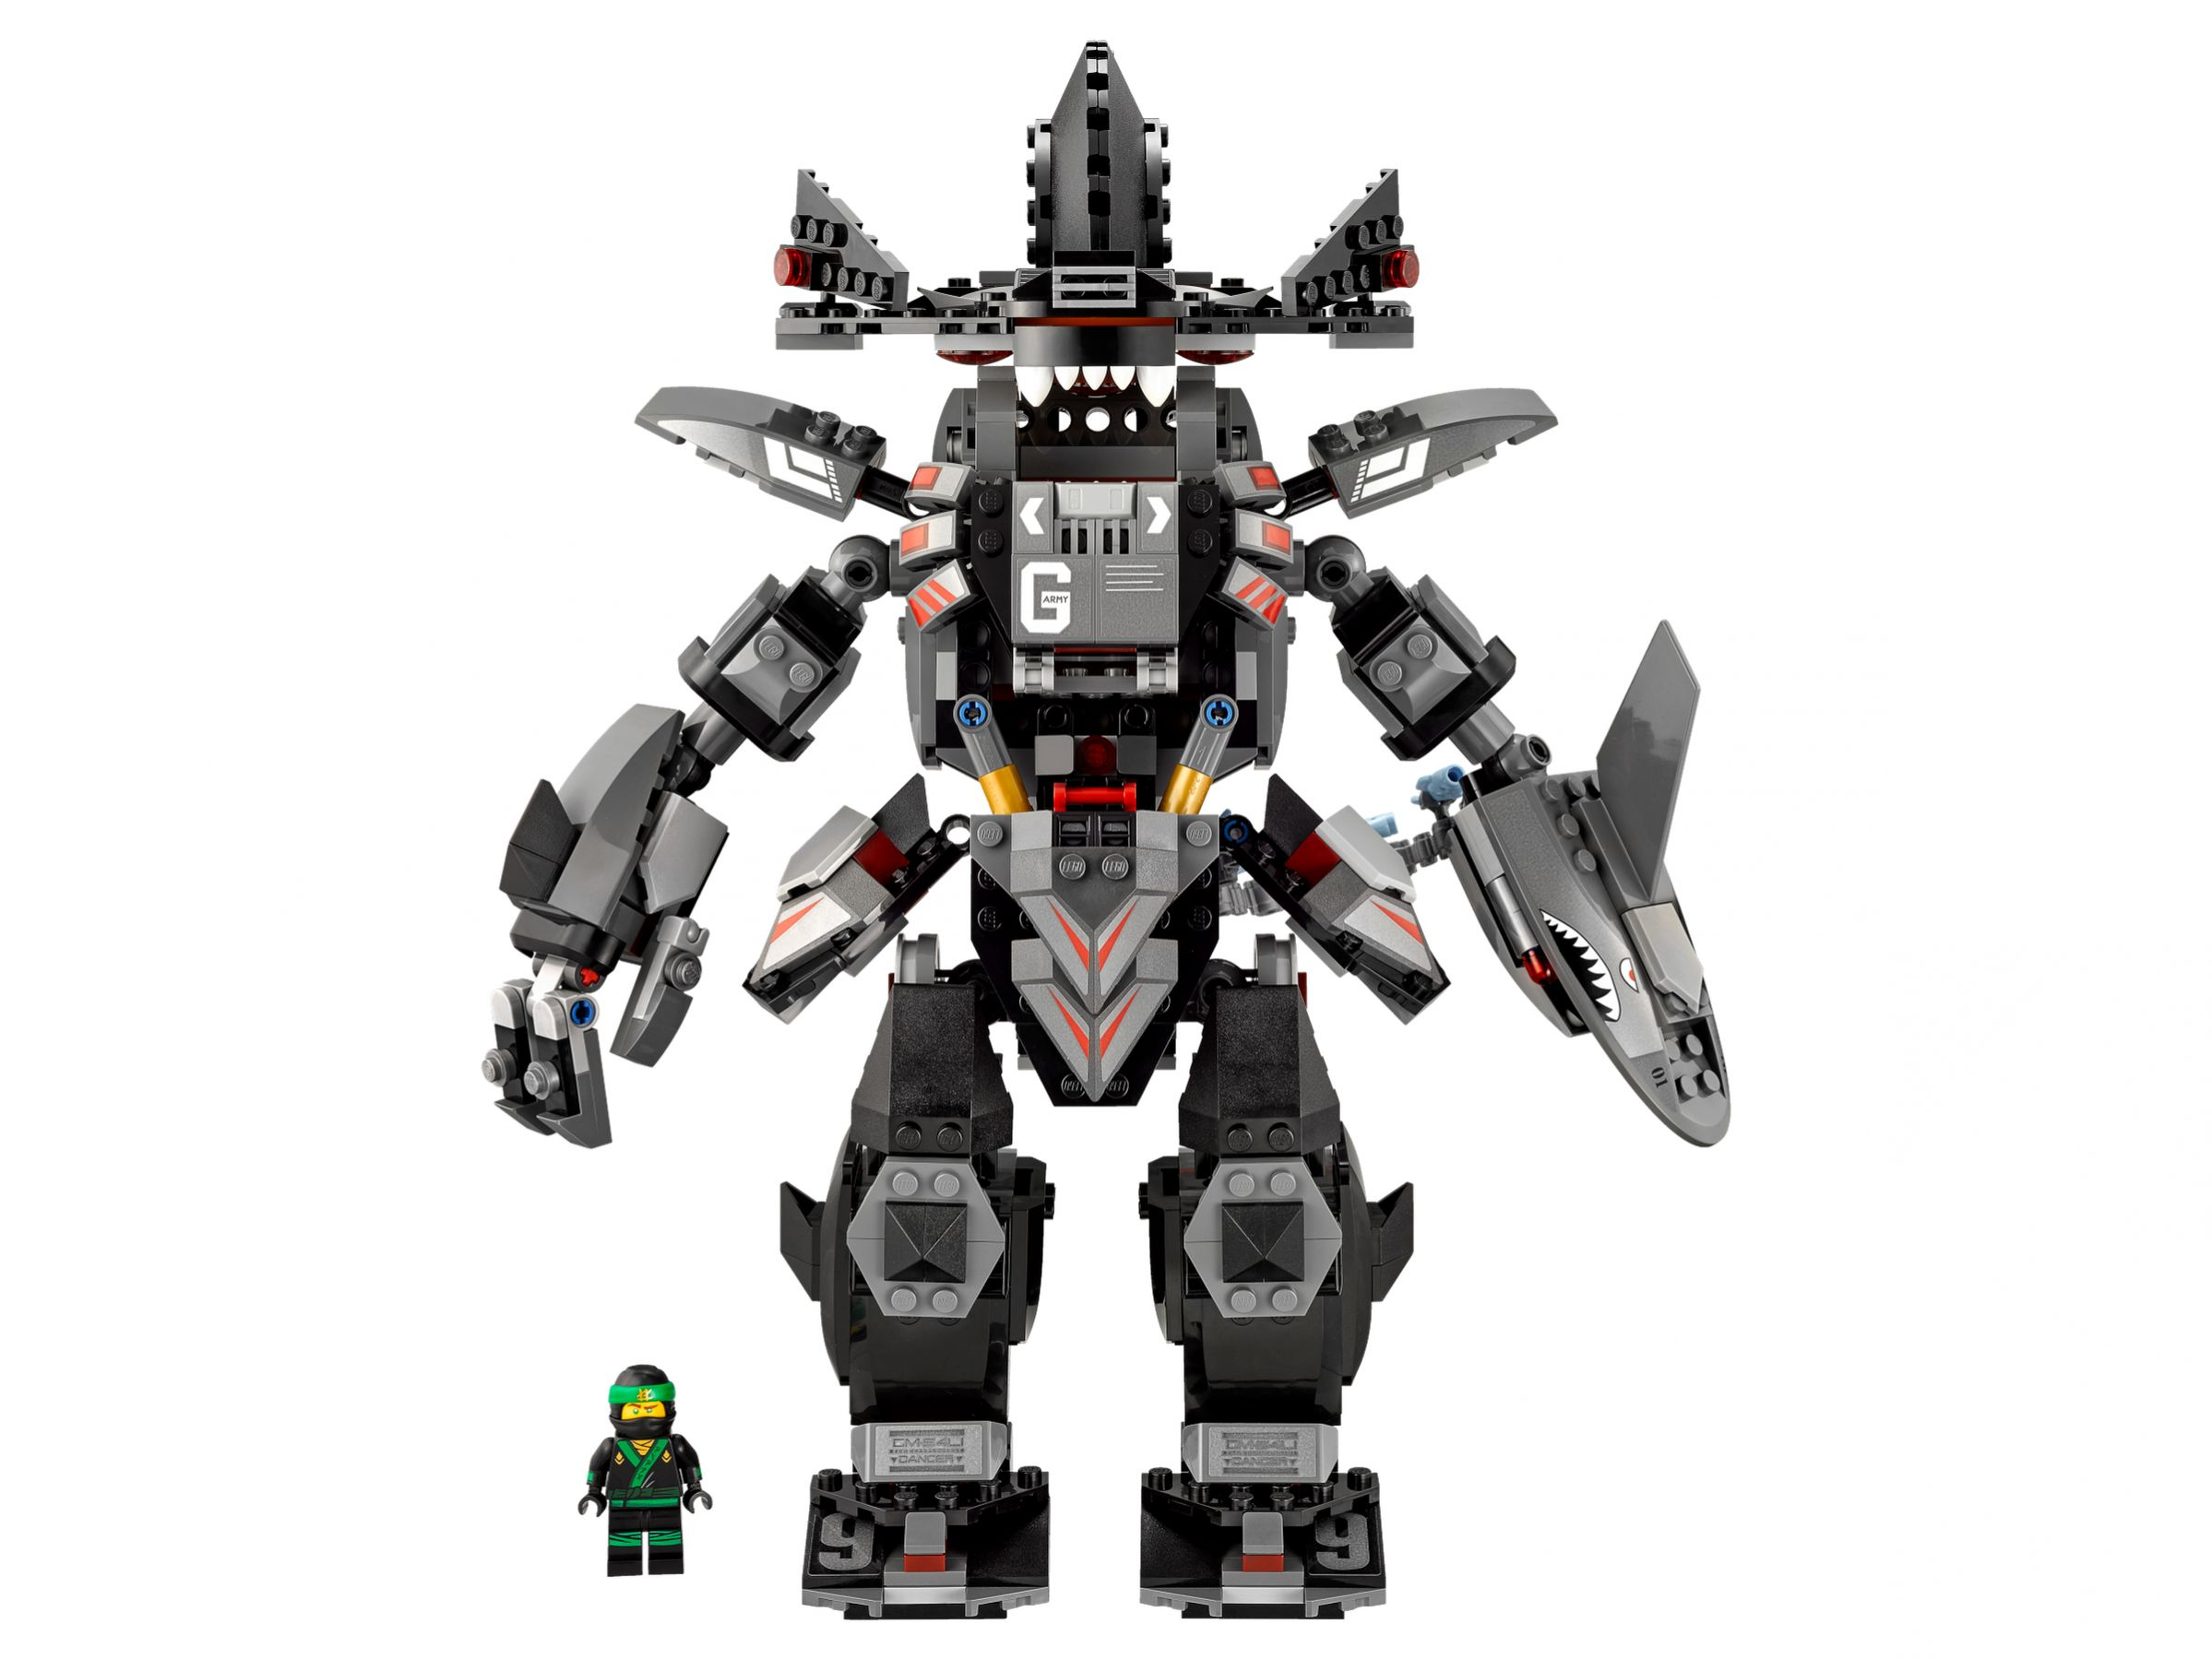 LEGO The LEGO Ninjago Movie 70613 Garmadon's Robo-Hai LEGO_70613_alt8.jpg